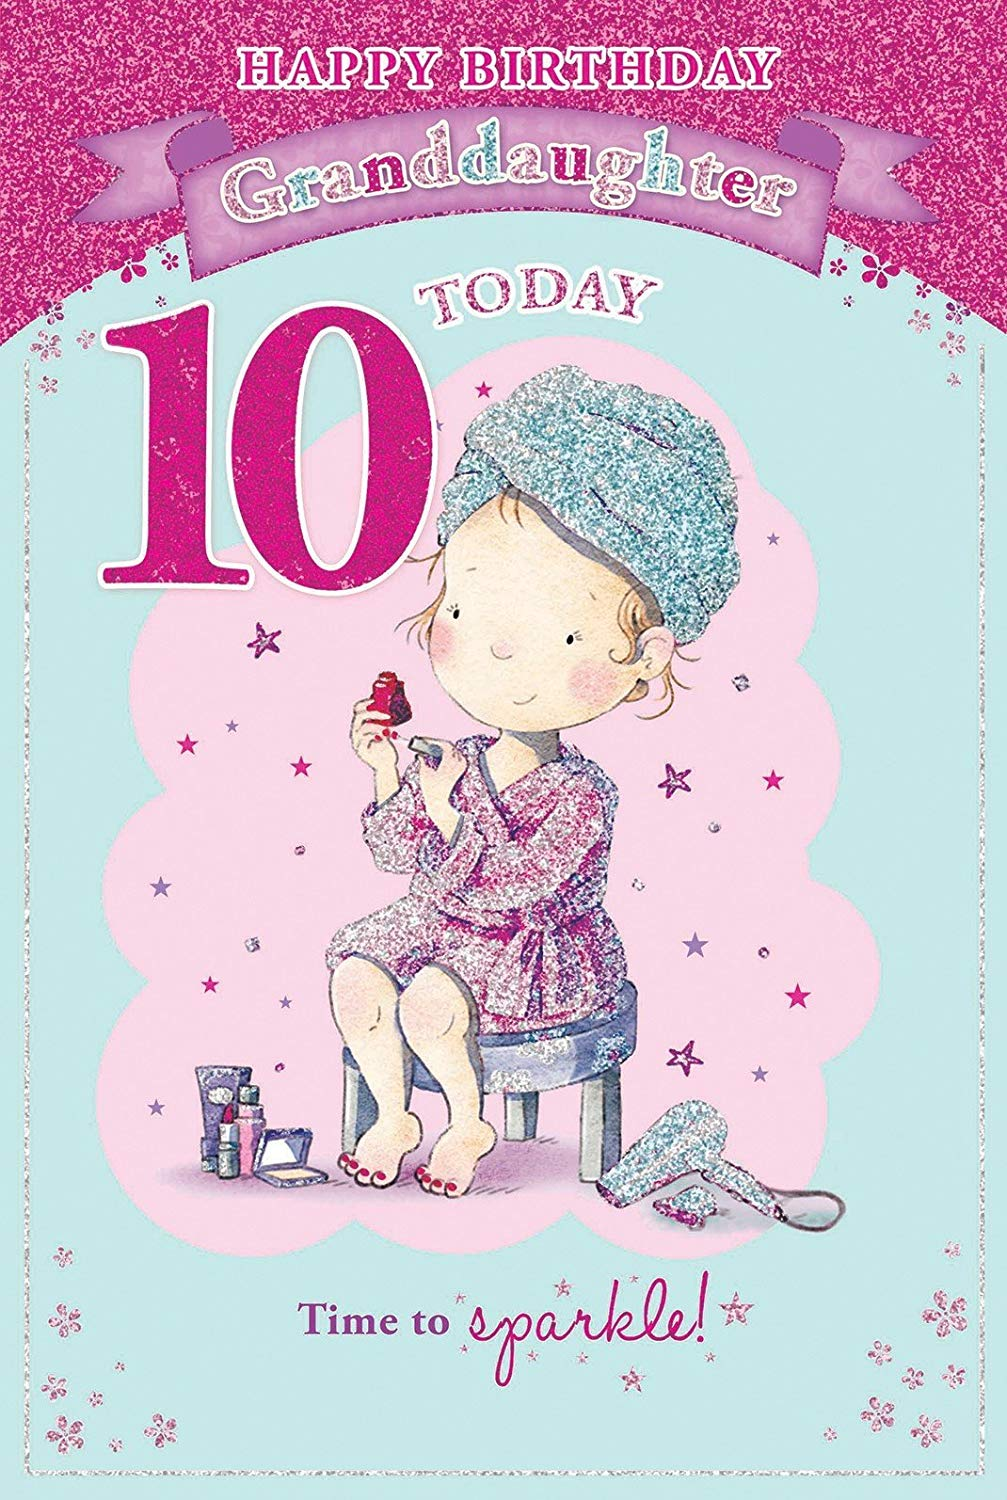 10th birthday card messages ; 81%252BF1LD9YaL